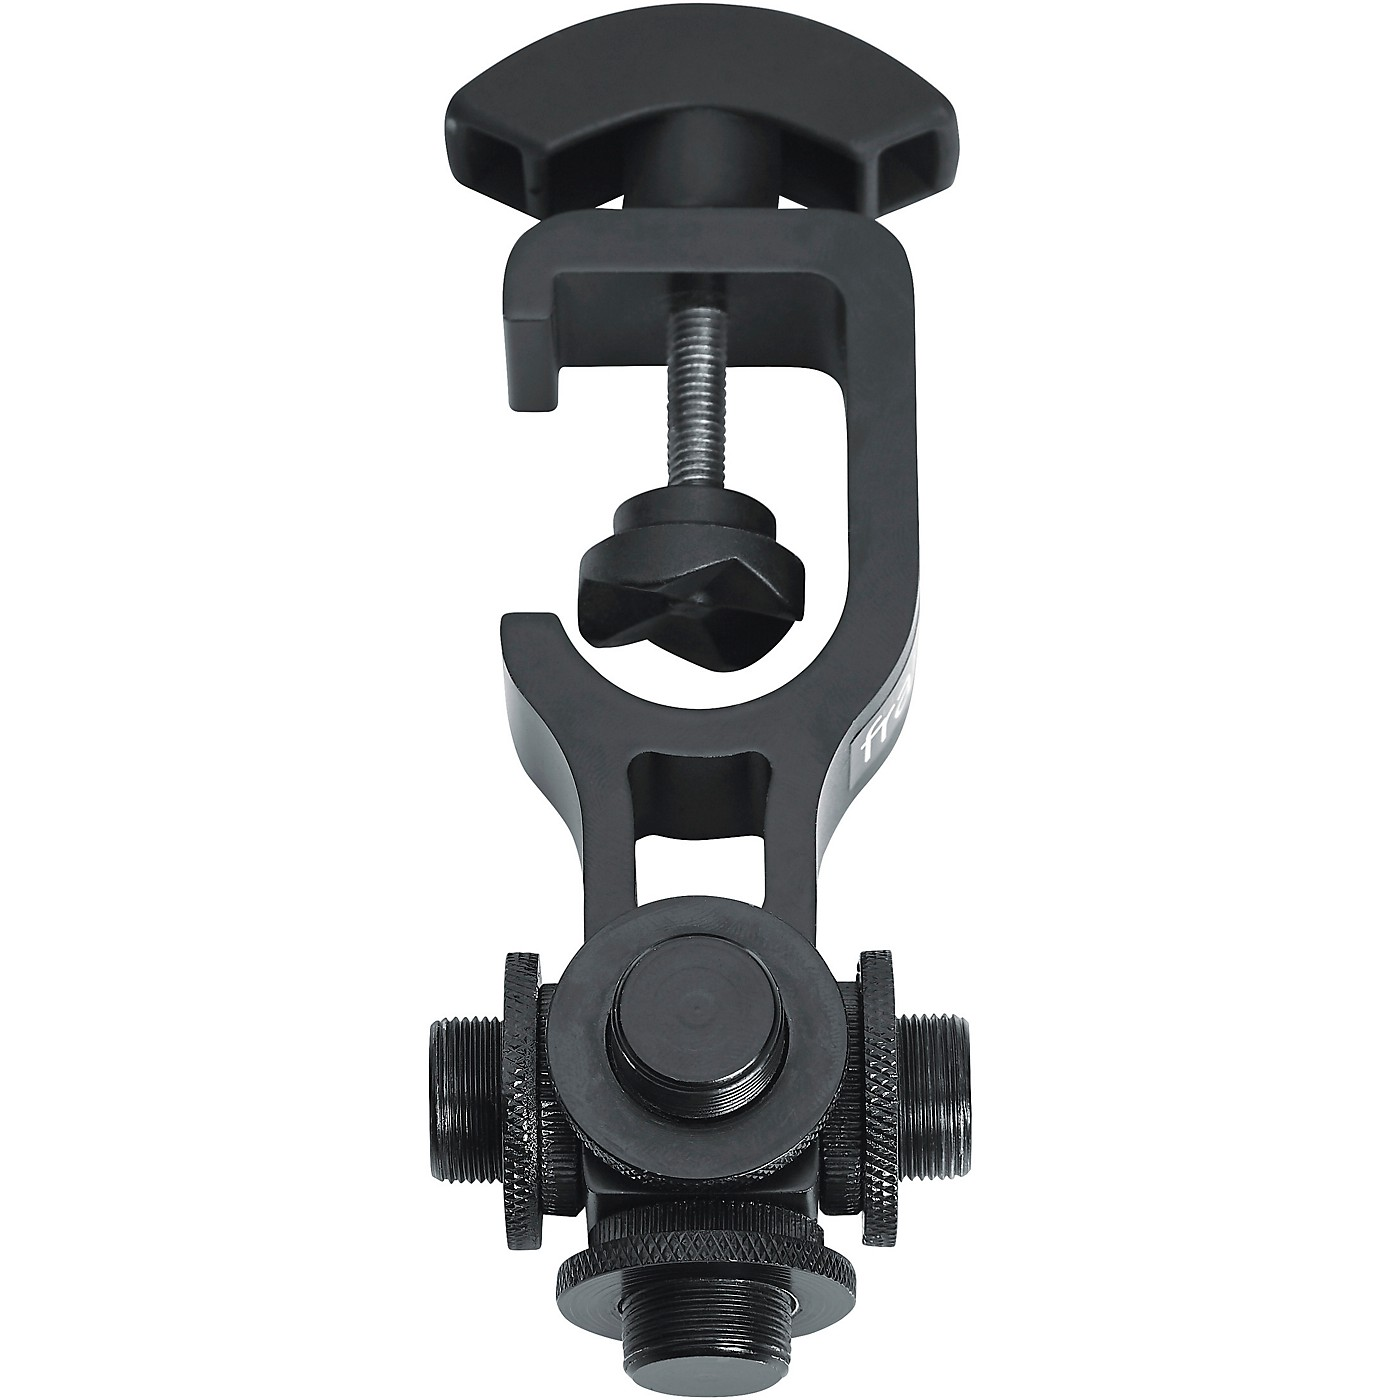 Gator GFW-MIC-MULTIMOUNT Mount to Add up to 4 Accessories for Mic Stands thumbnail